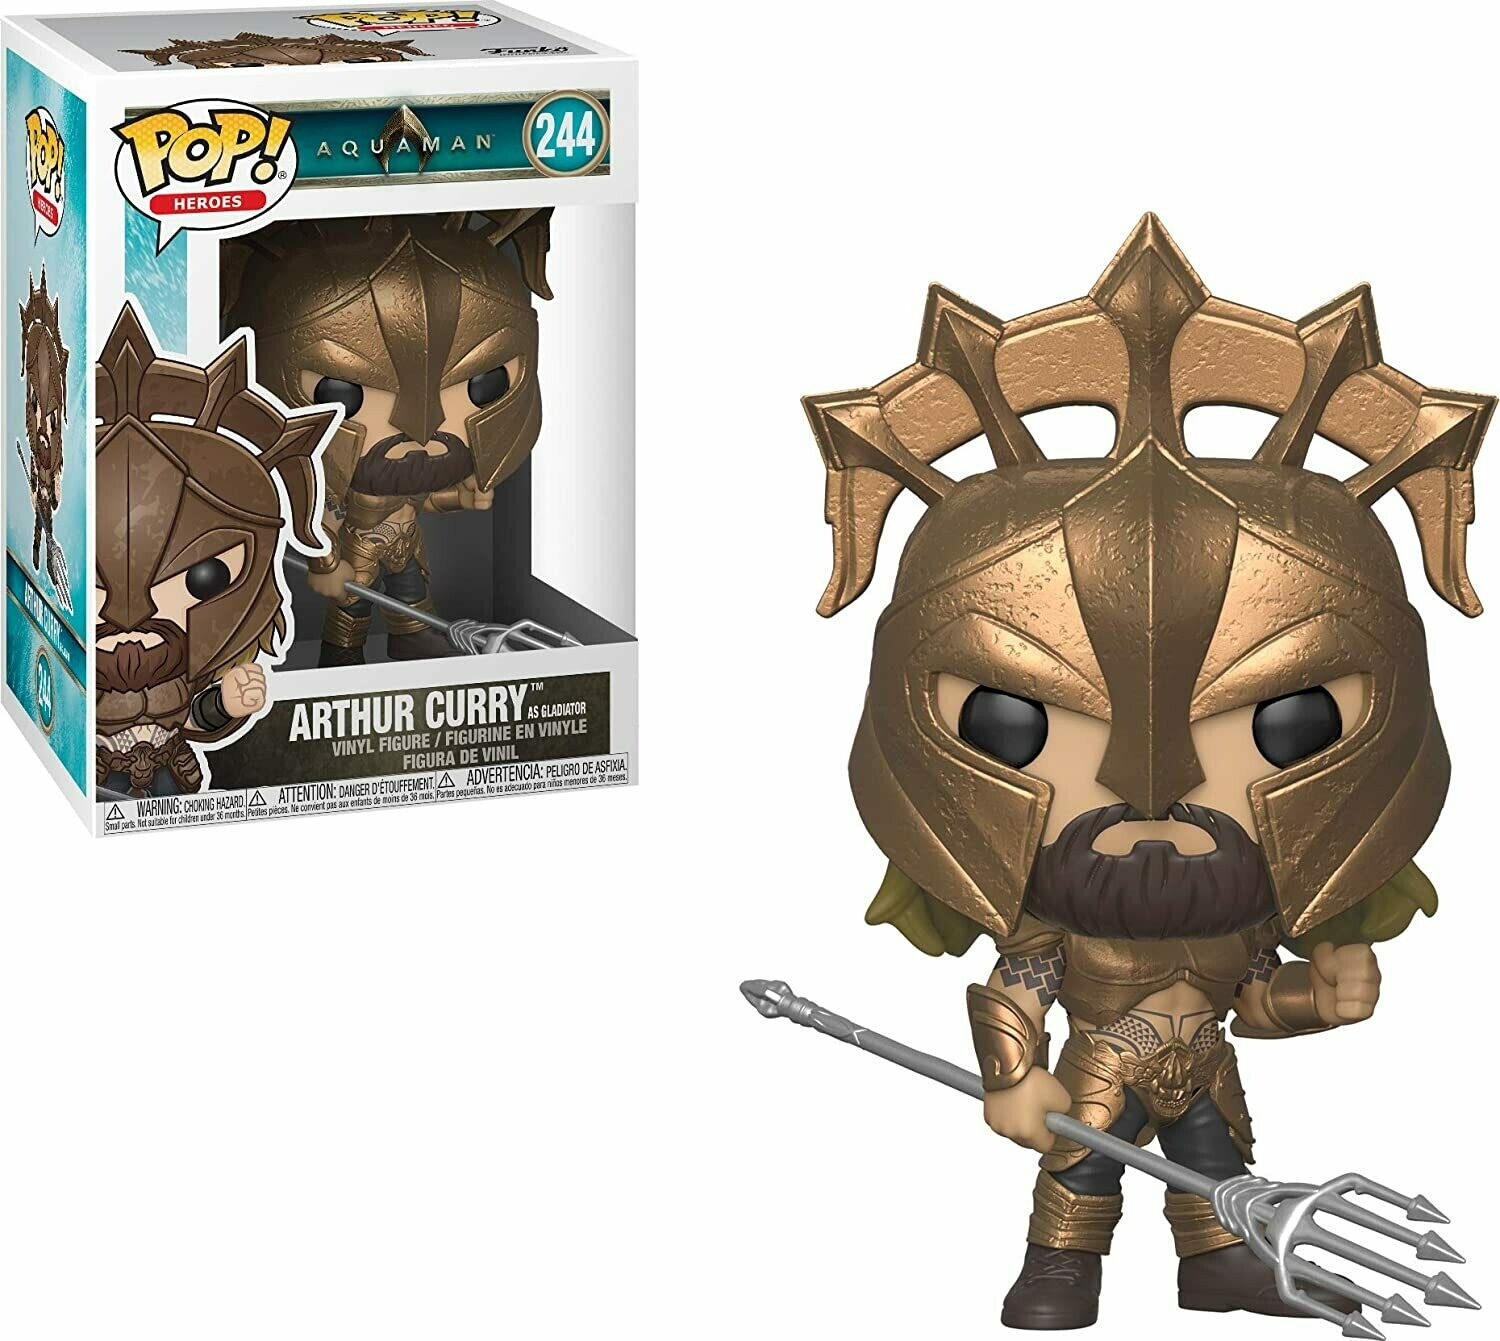 Funko Pop! Aquaman Arthur Curry Gladiador